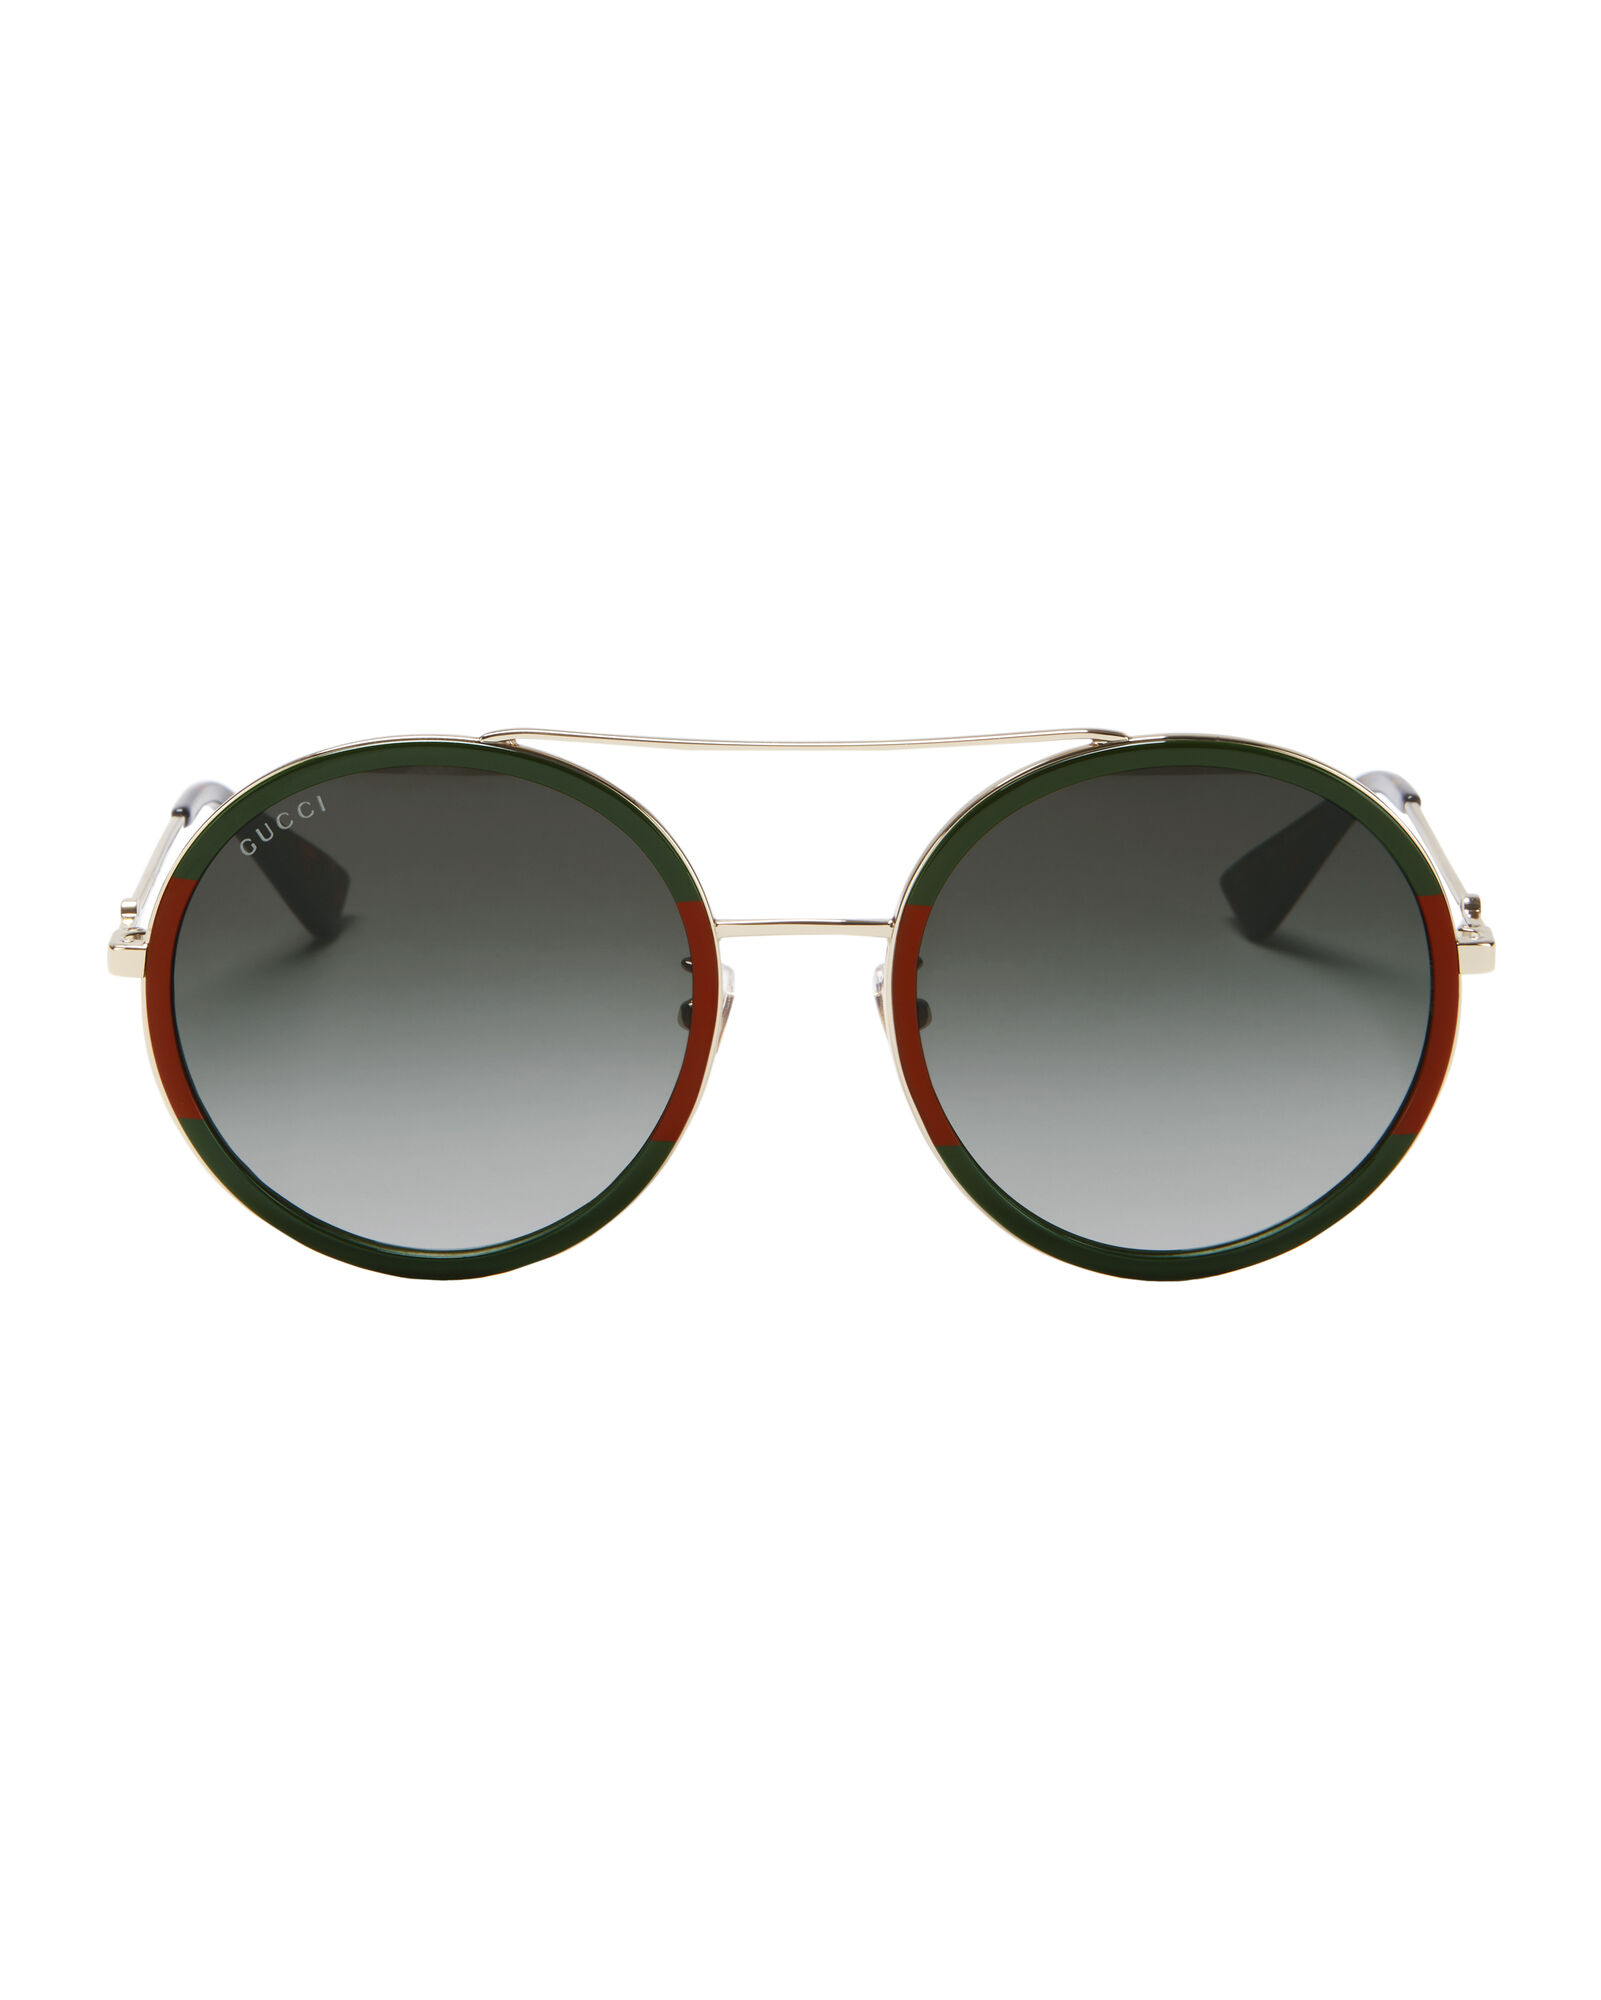 6fe029df3f6d Colorblock Round Aviator Sunglasses, GREEN/RED/GOLD, ...